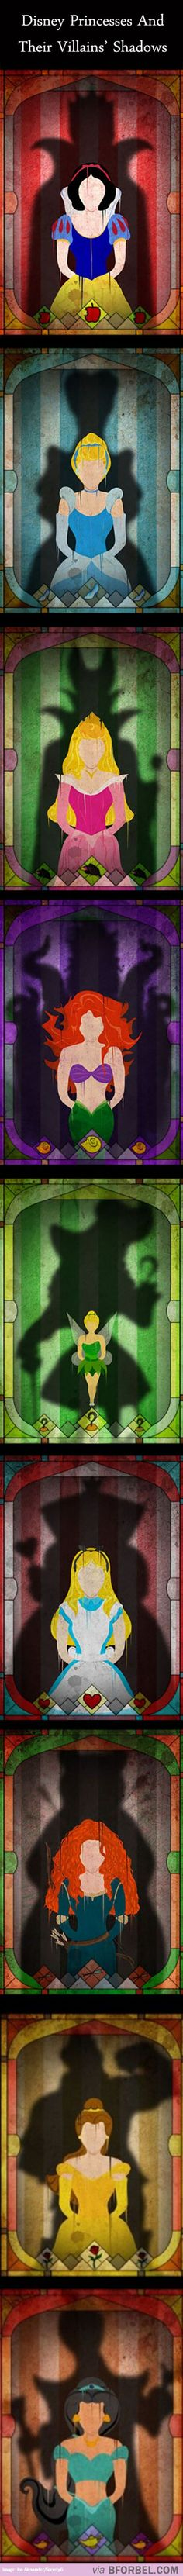 9 Disney Princesses Haunted By The Shadows Of Their VillainsI love this! This would be a cool art piece!